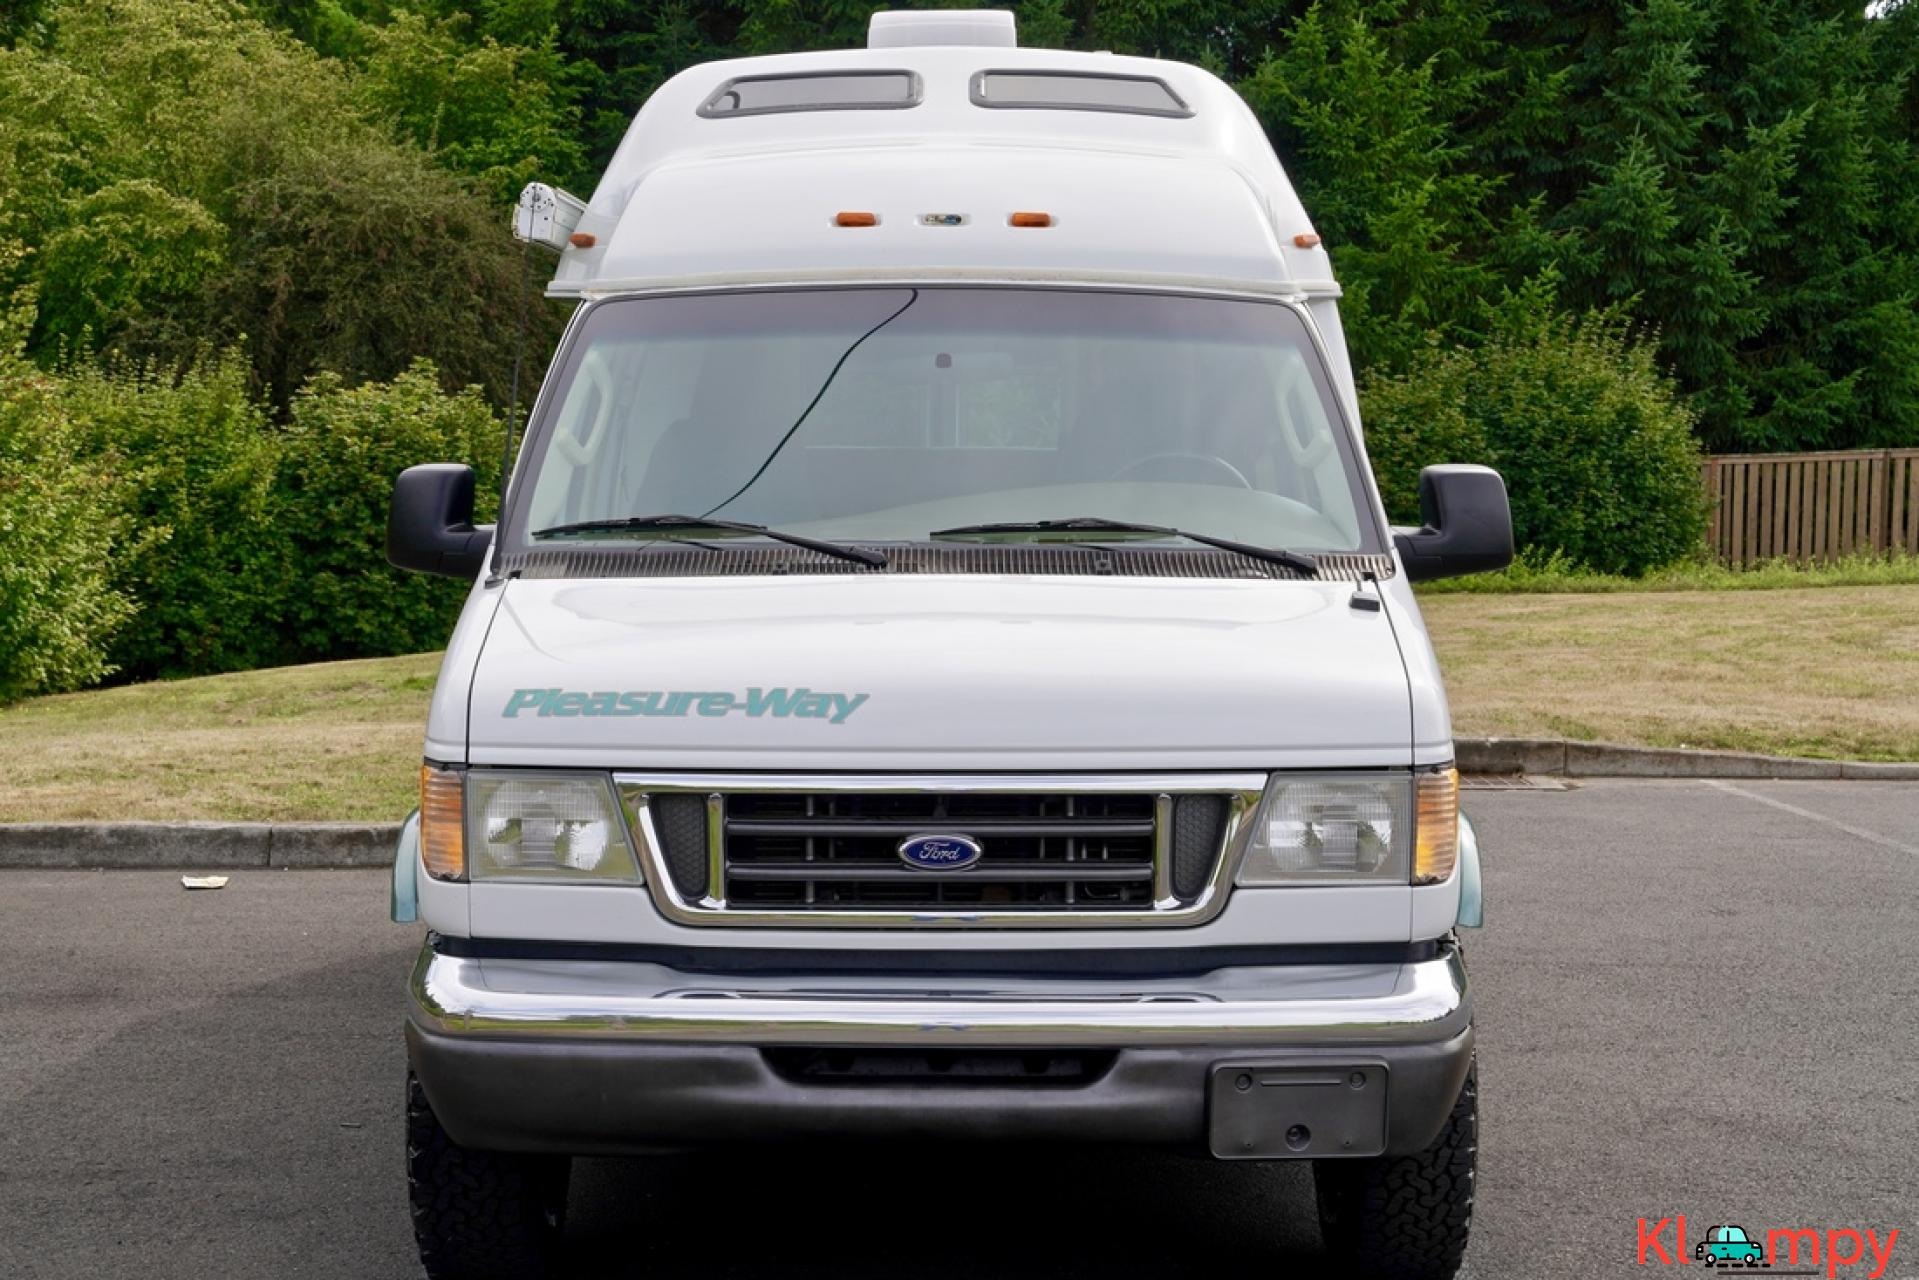 2004 Pleasure-Way Excel 20' Class B - 11/23